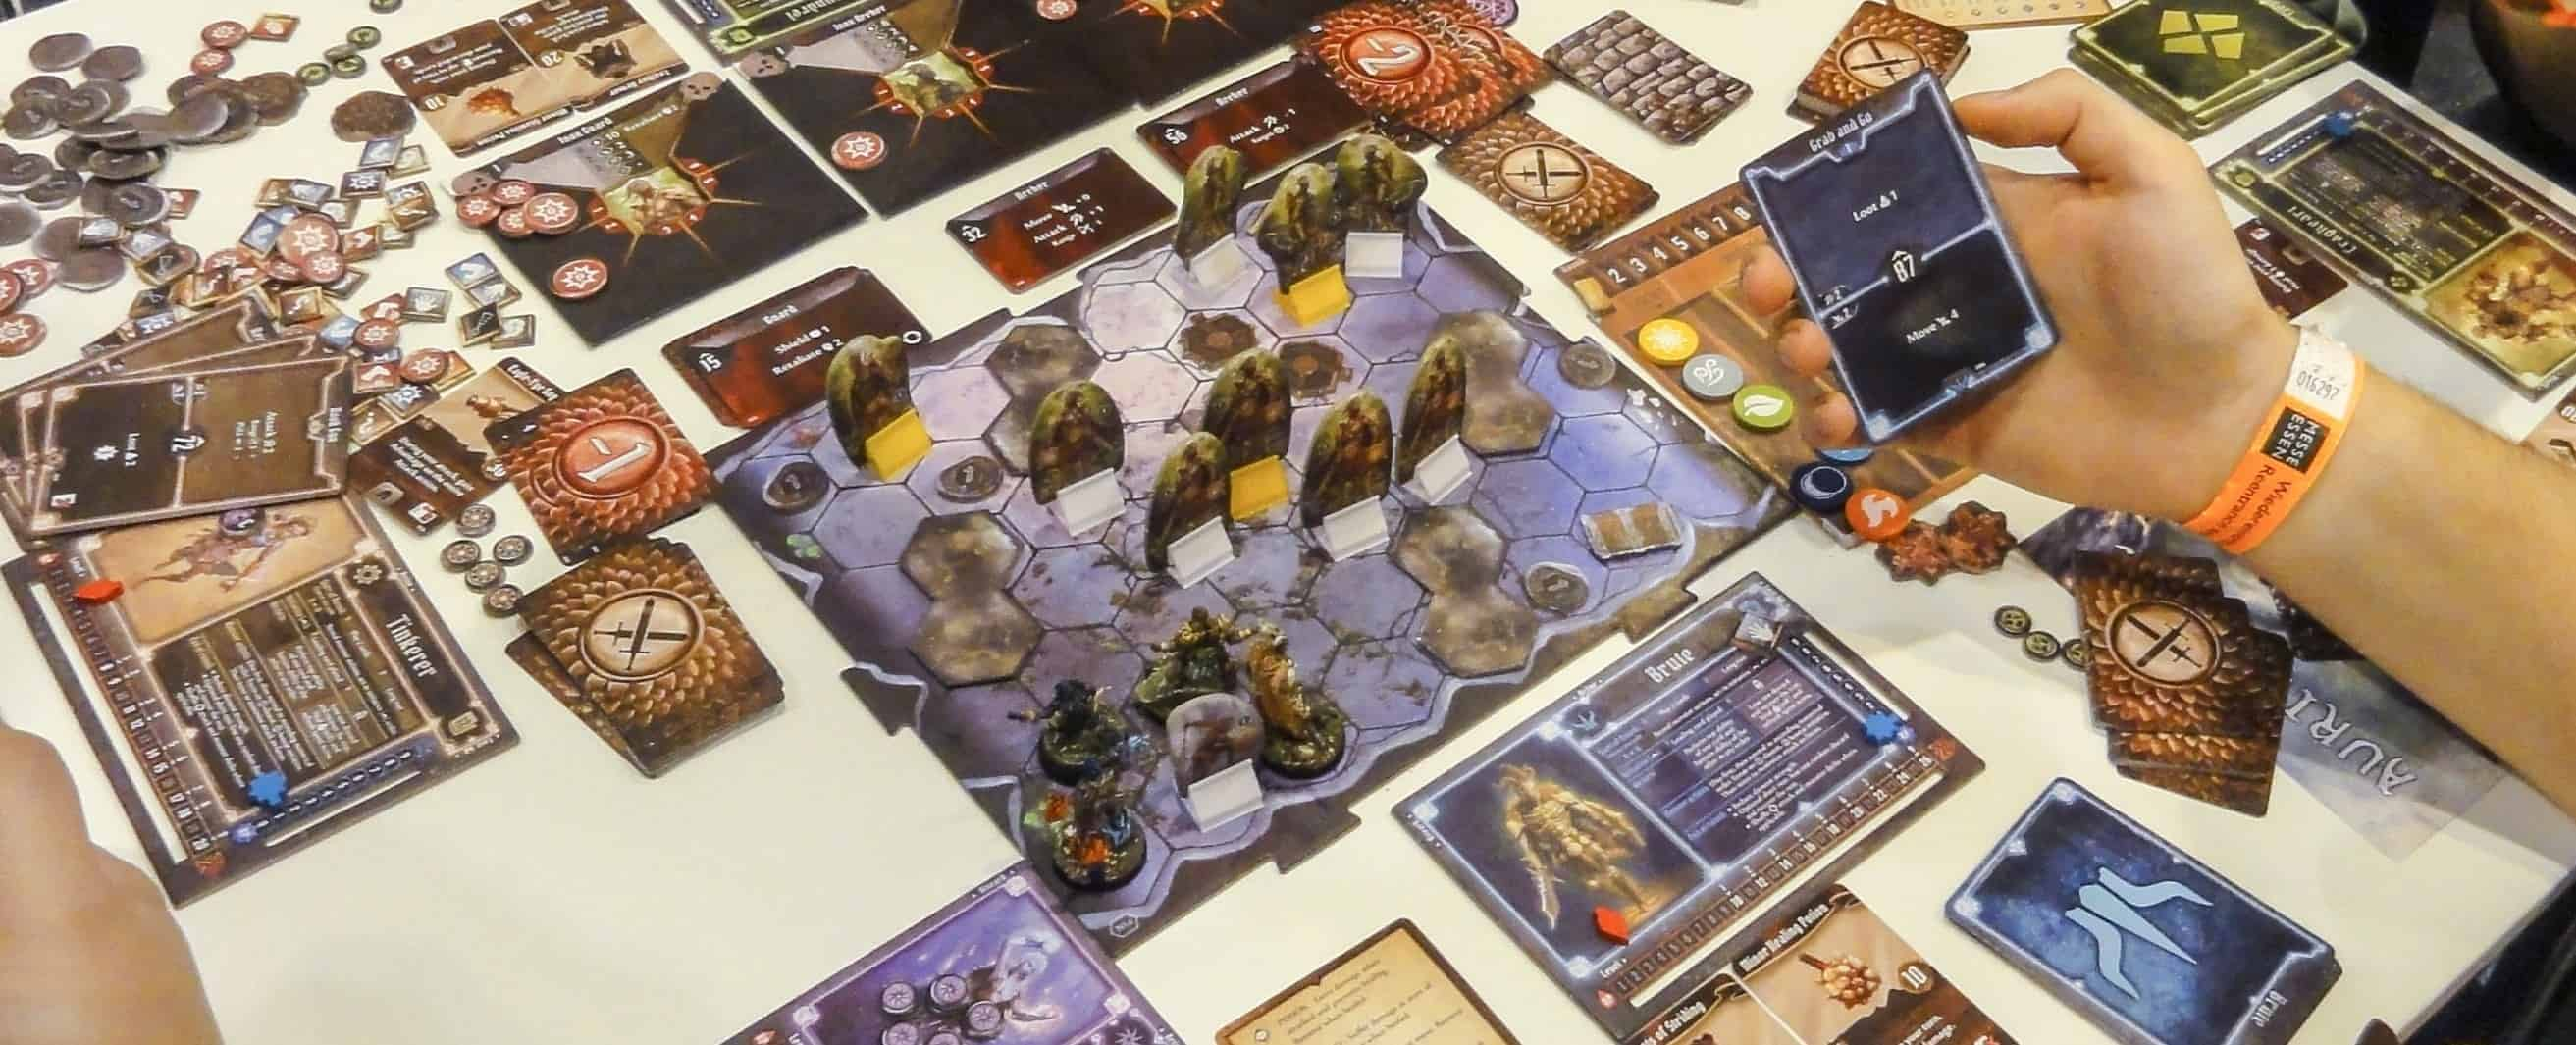 Gloomhaven is not only the best cooperative board games, according to BGG , it is the best board game in the world!